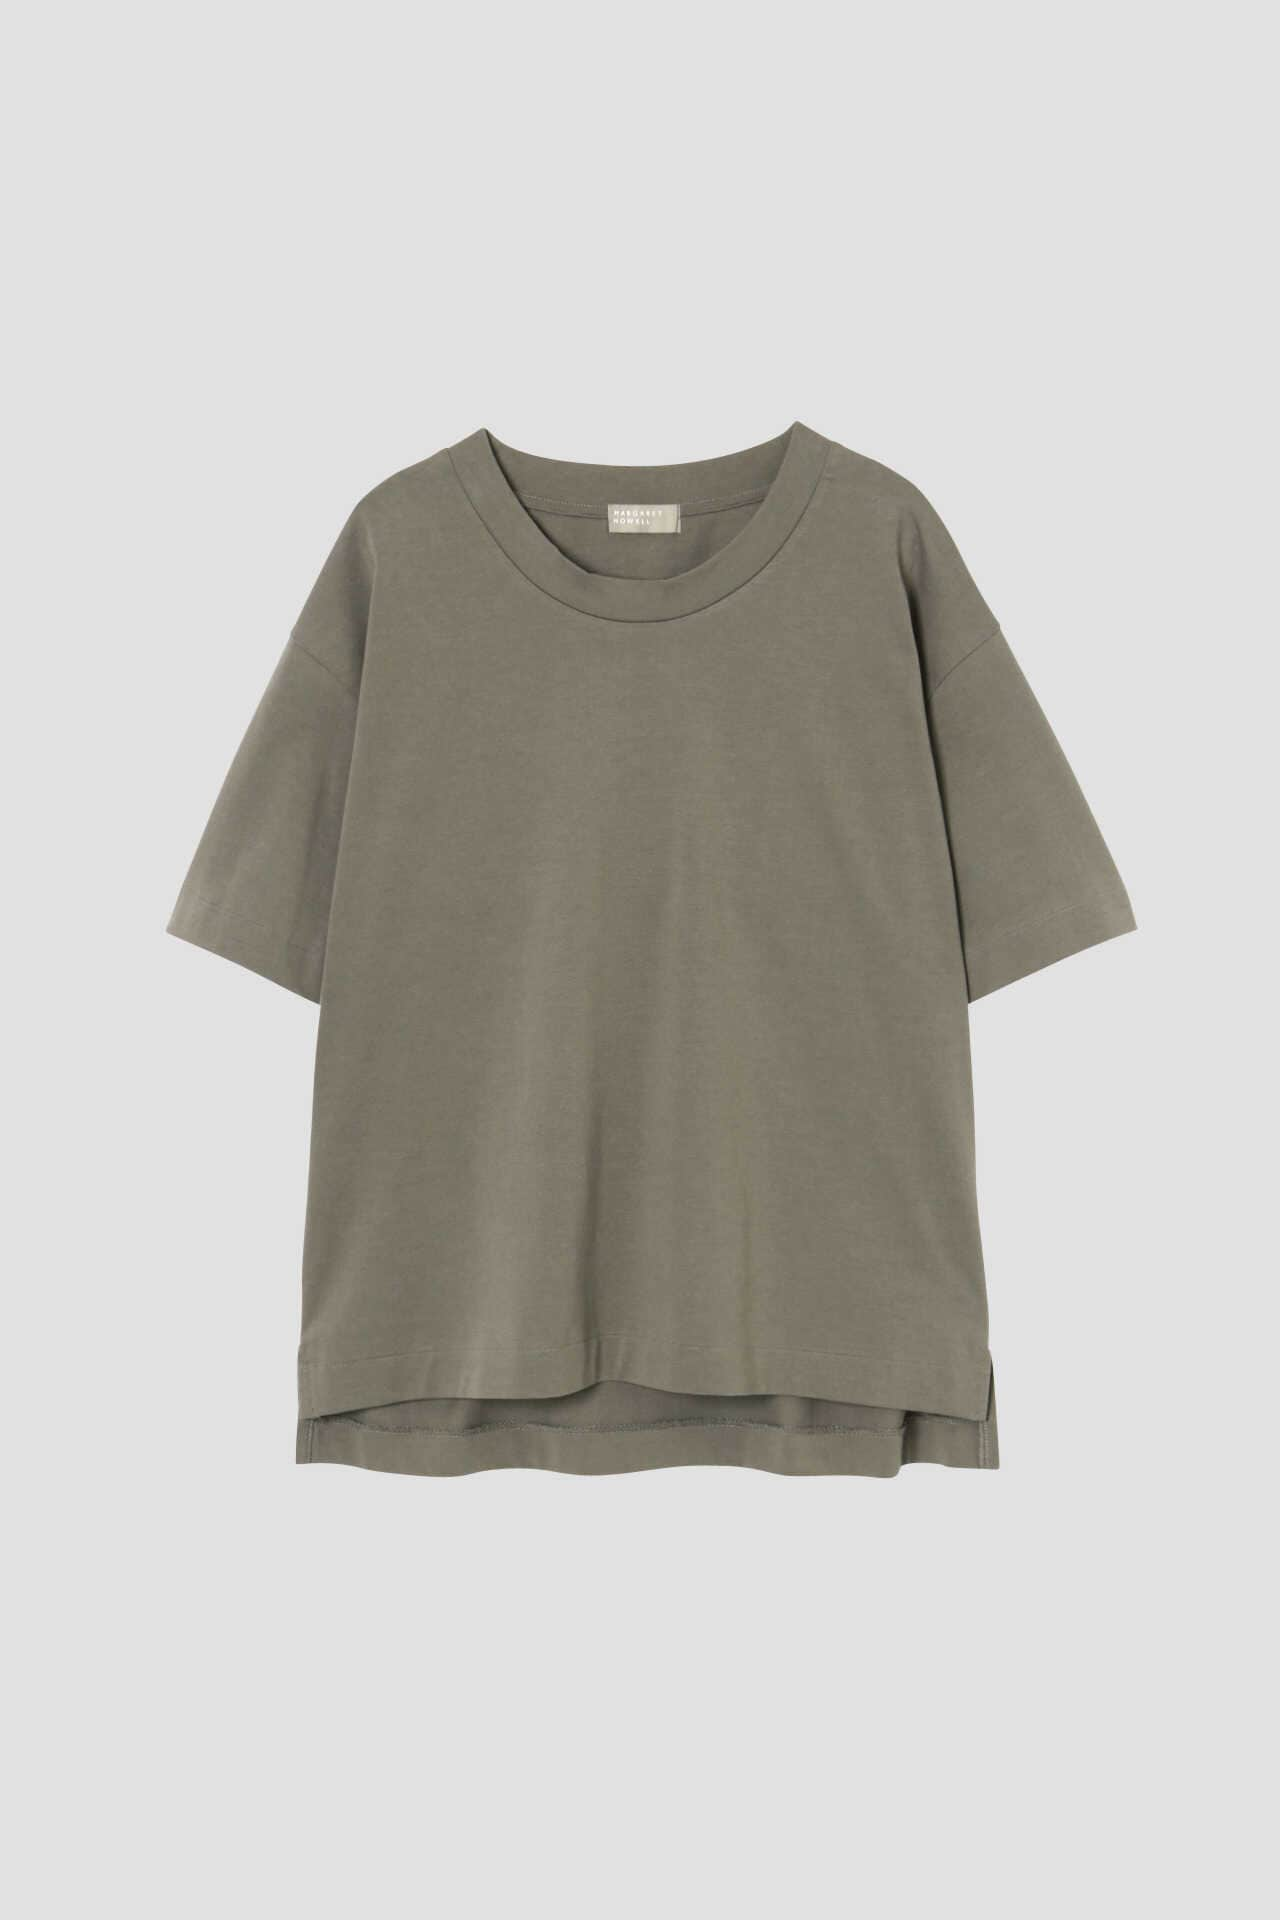 OVERSIZED COTTON T SHIRT4